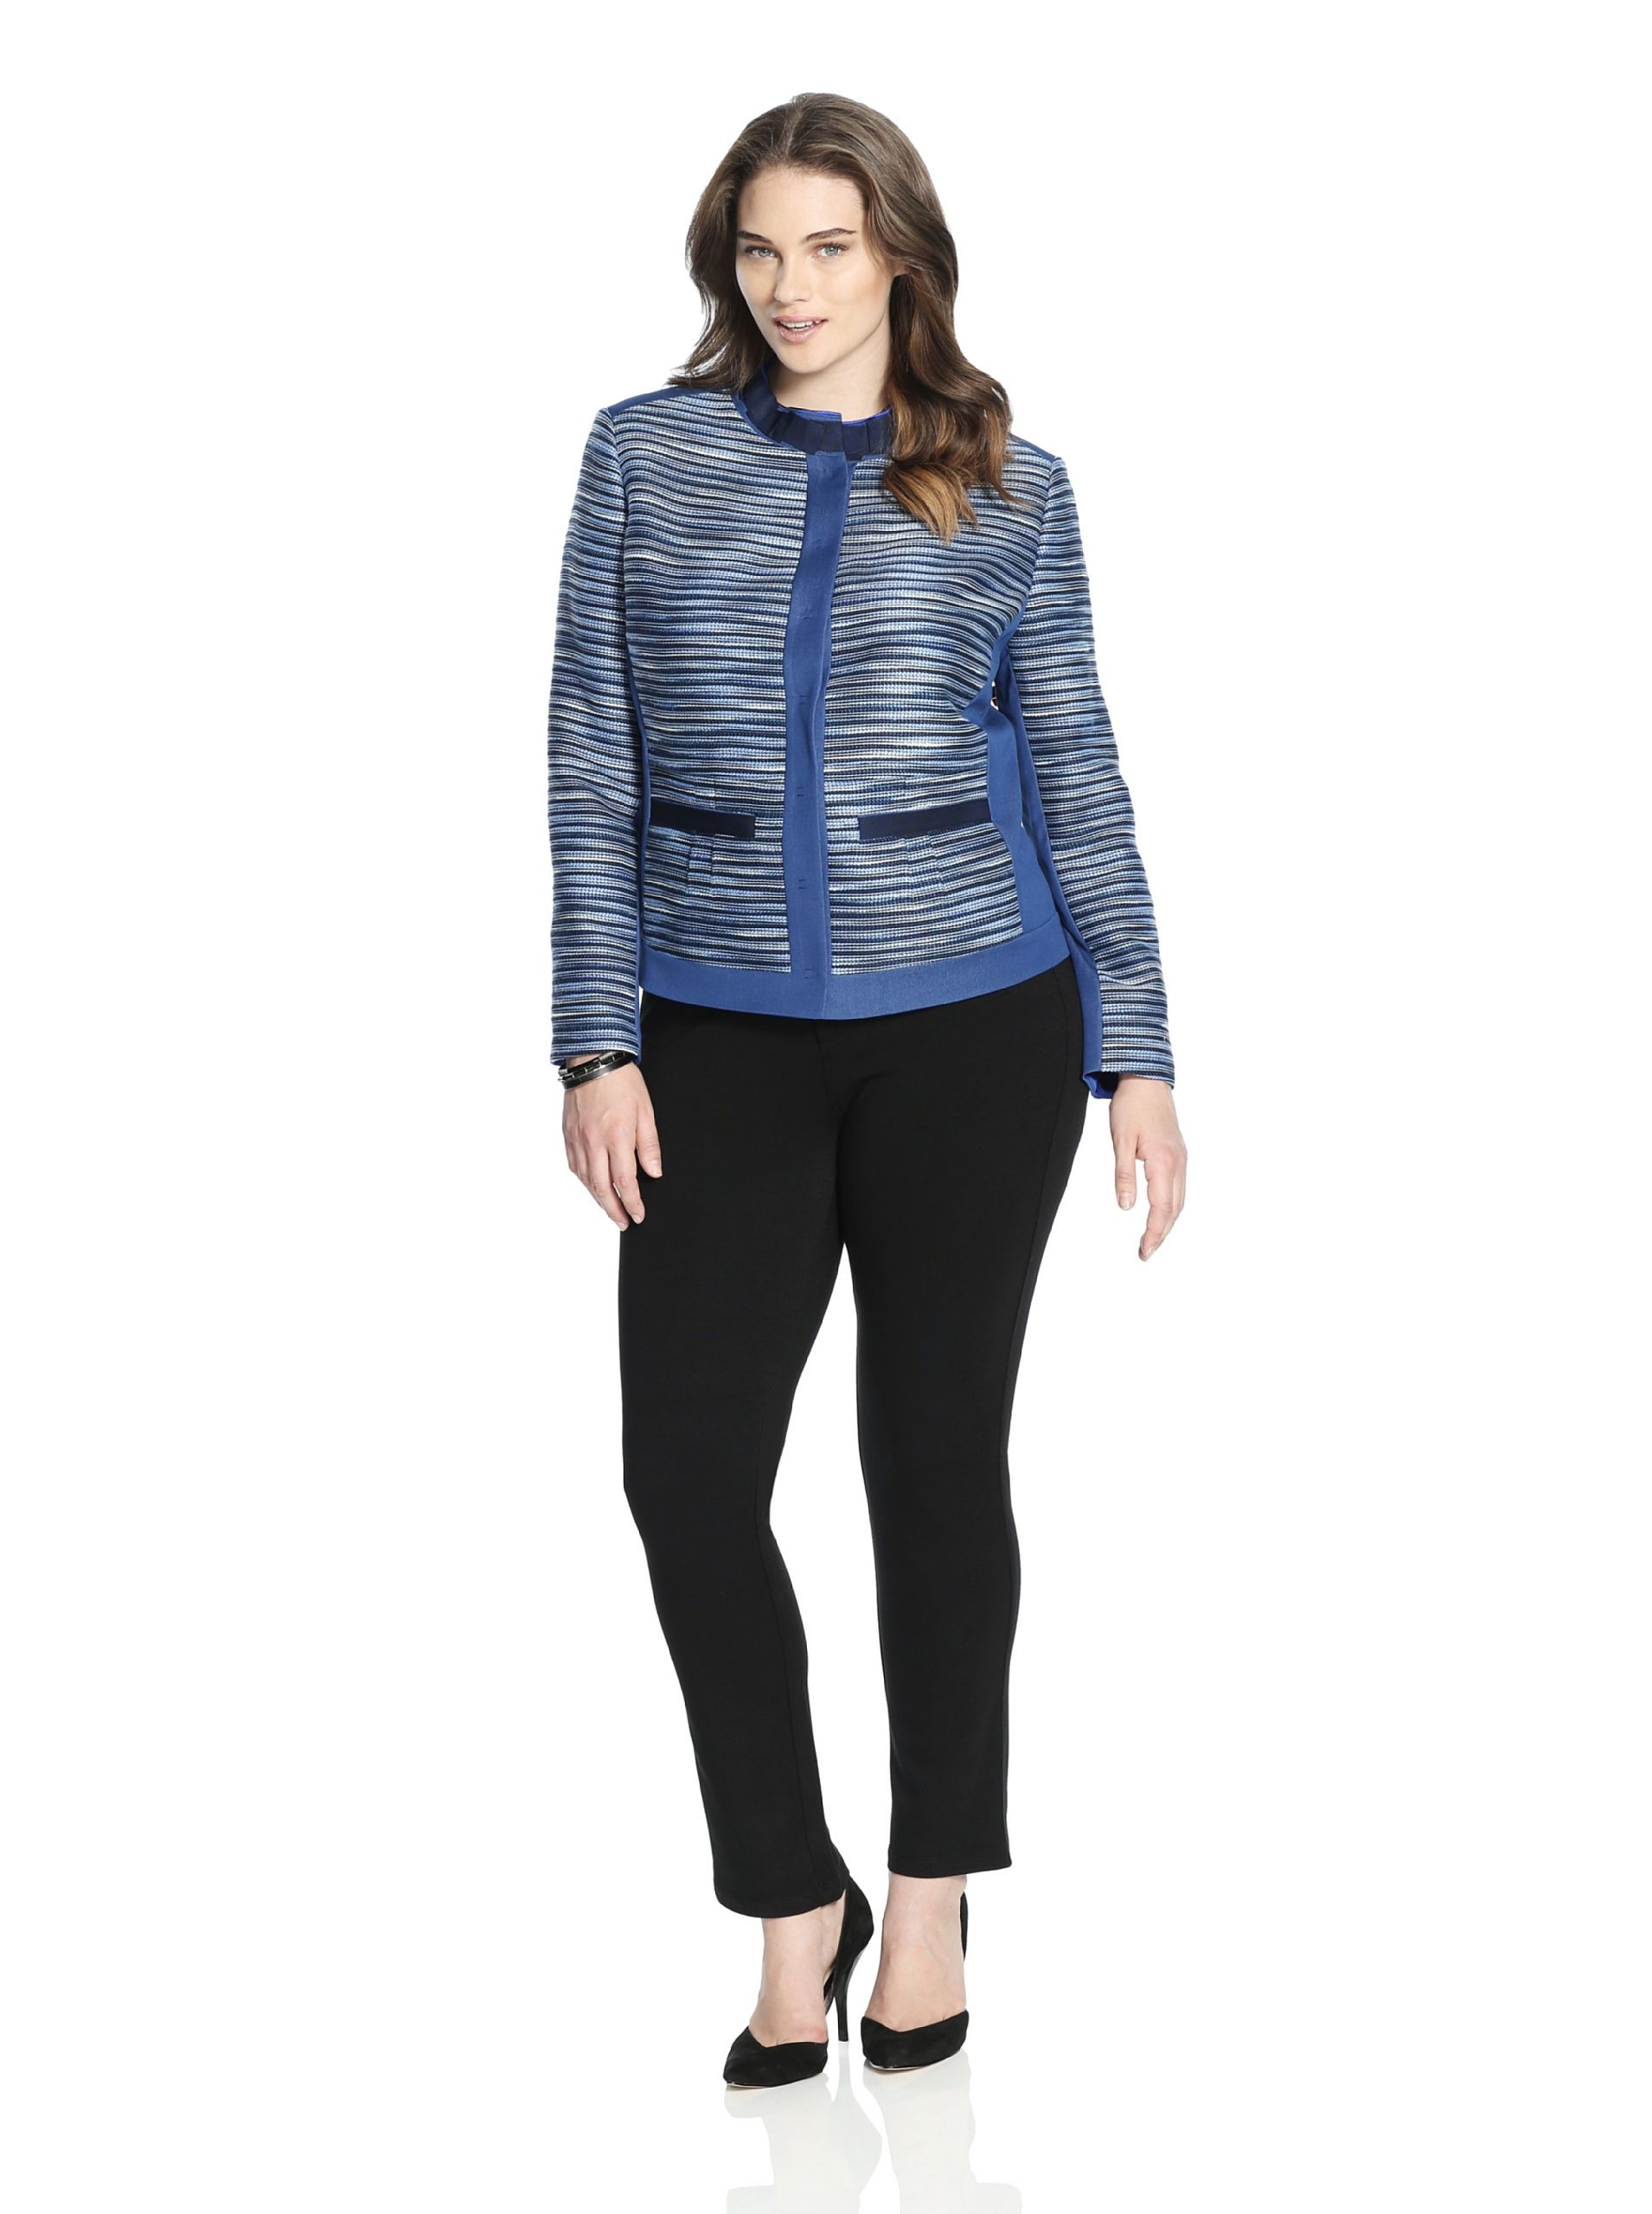 T Tahari Women's Ruby Jacket (Blue) Textured stripe jacket with solid trim, hidden snap closure, stand collar with pleated grosgrain detail, slip pockets, full lining JacketWomen #Outerwear